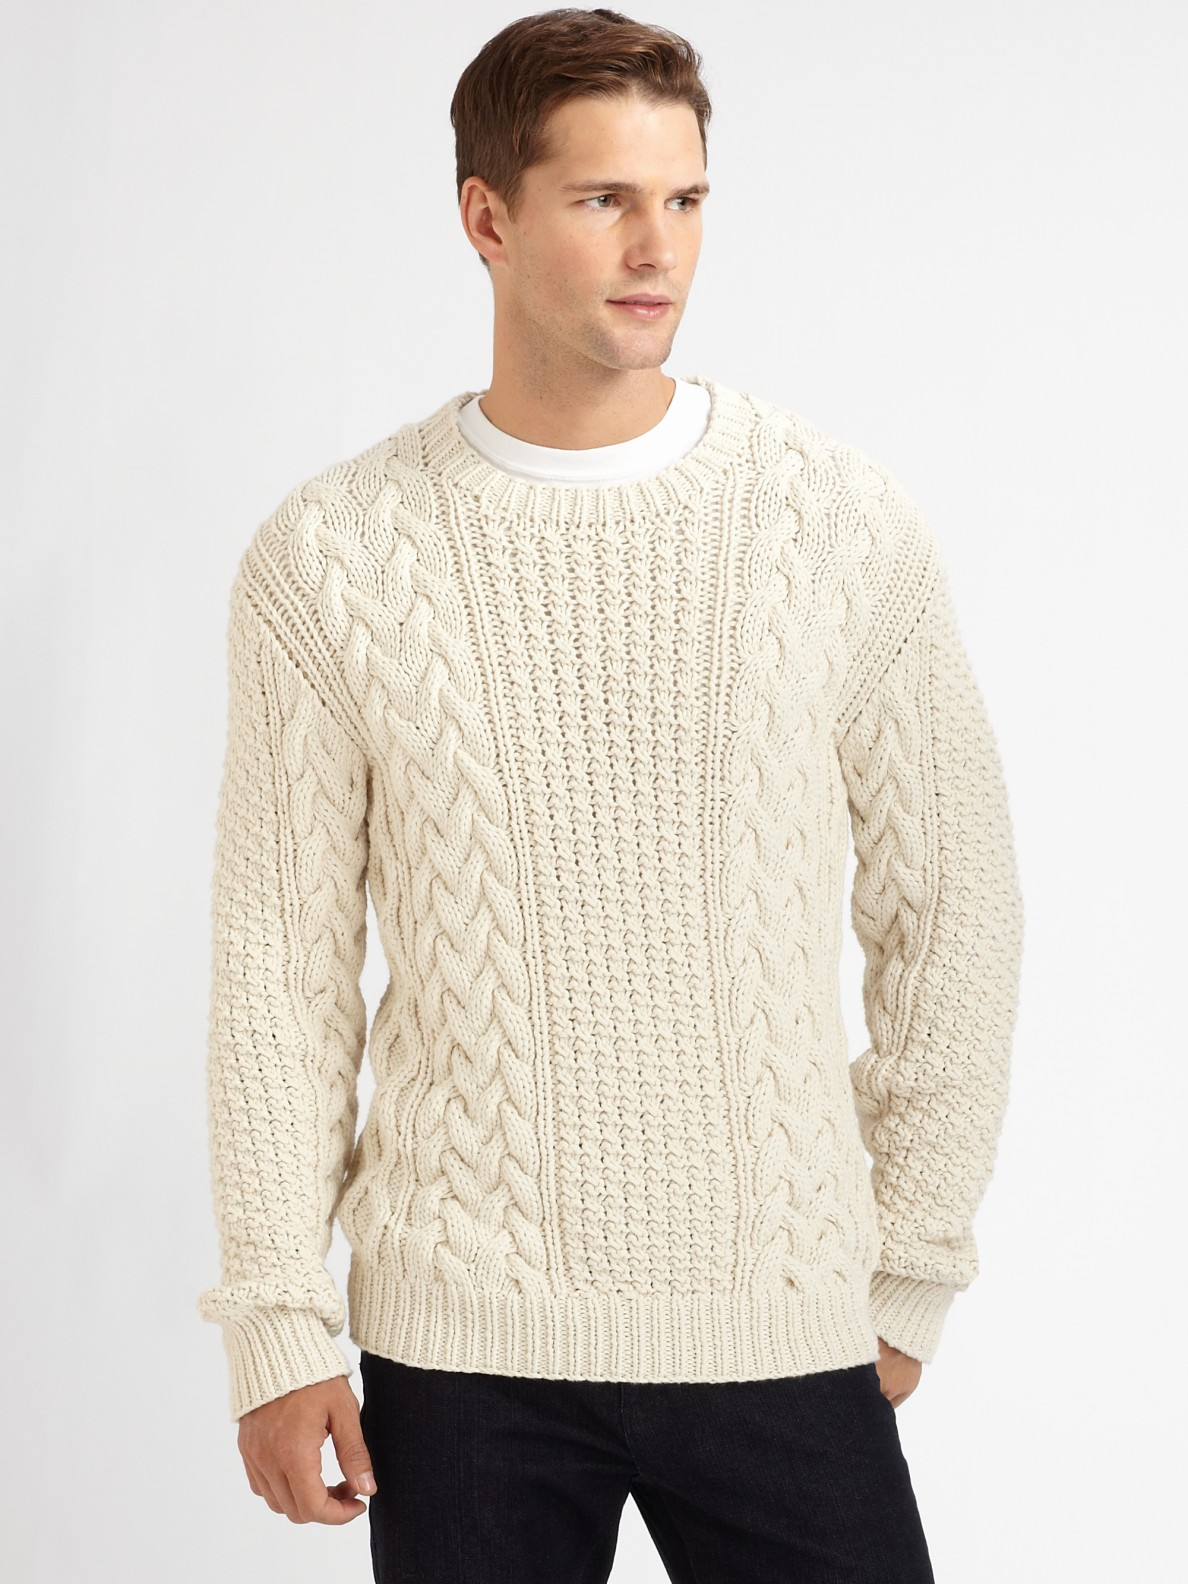 Michael Kors Cable Knit Sweater In White For Men Lyst